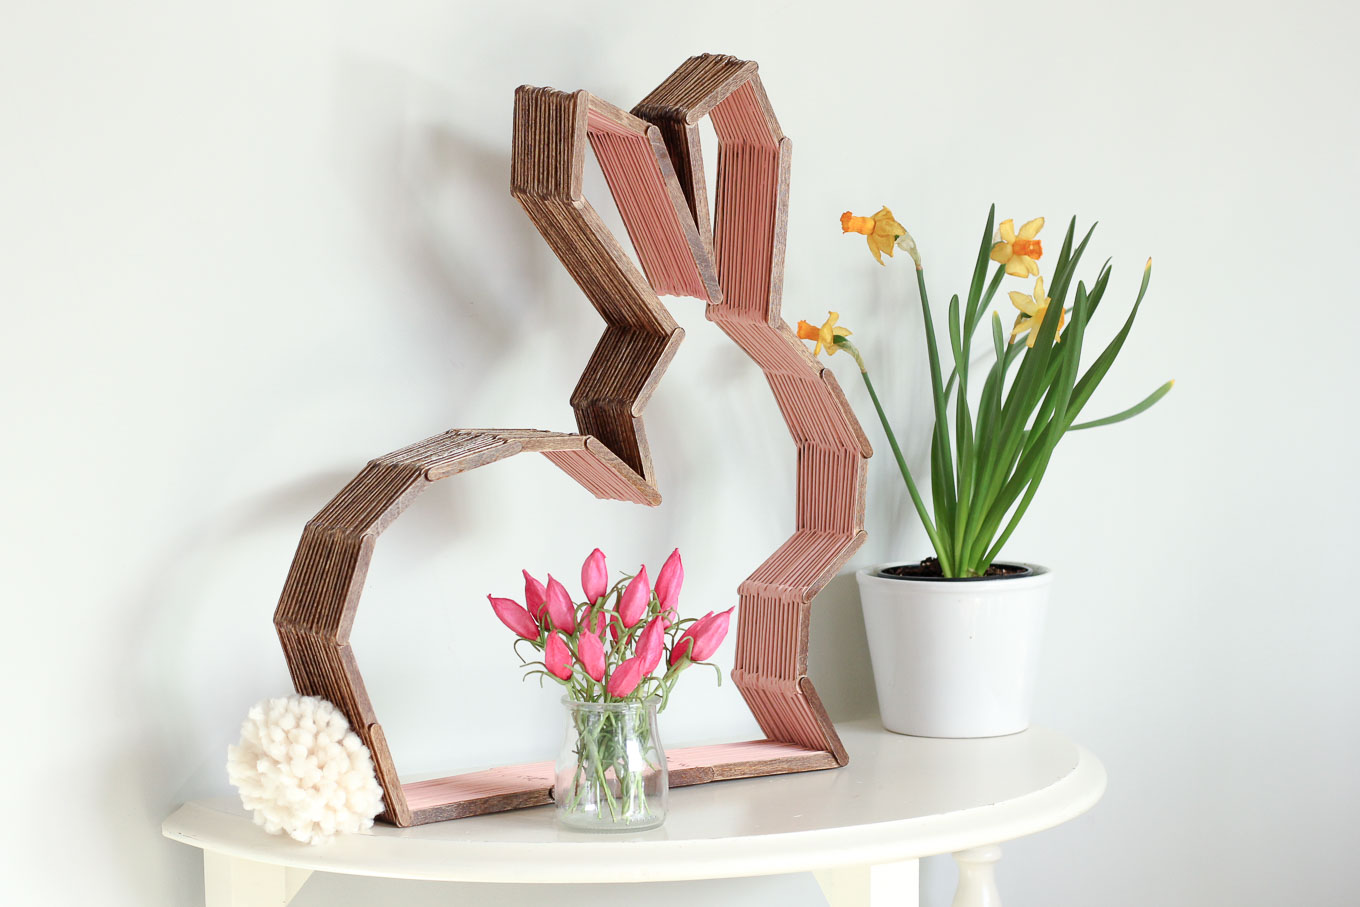 Modern Bunny Decor Made From Popsicle Sticks